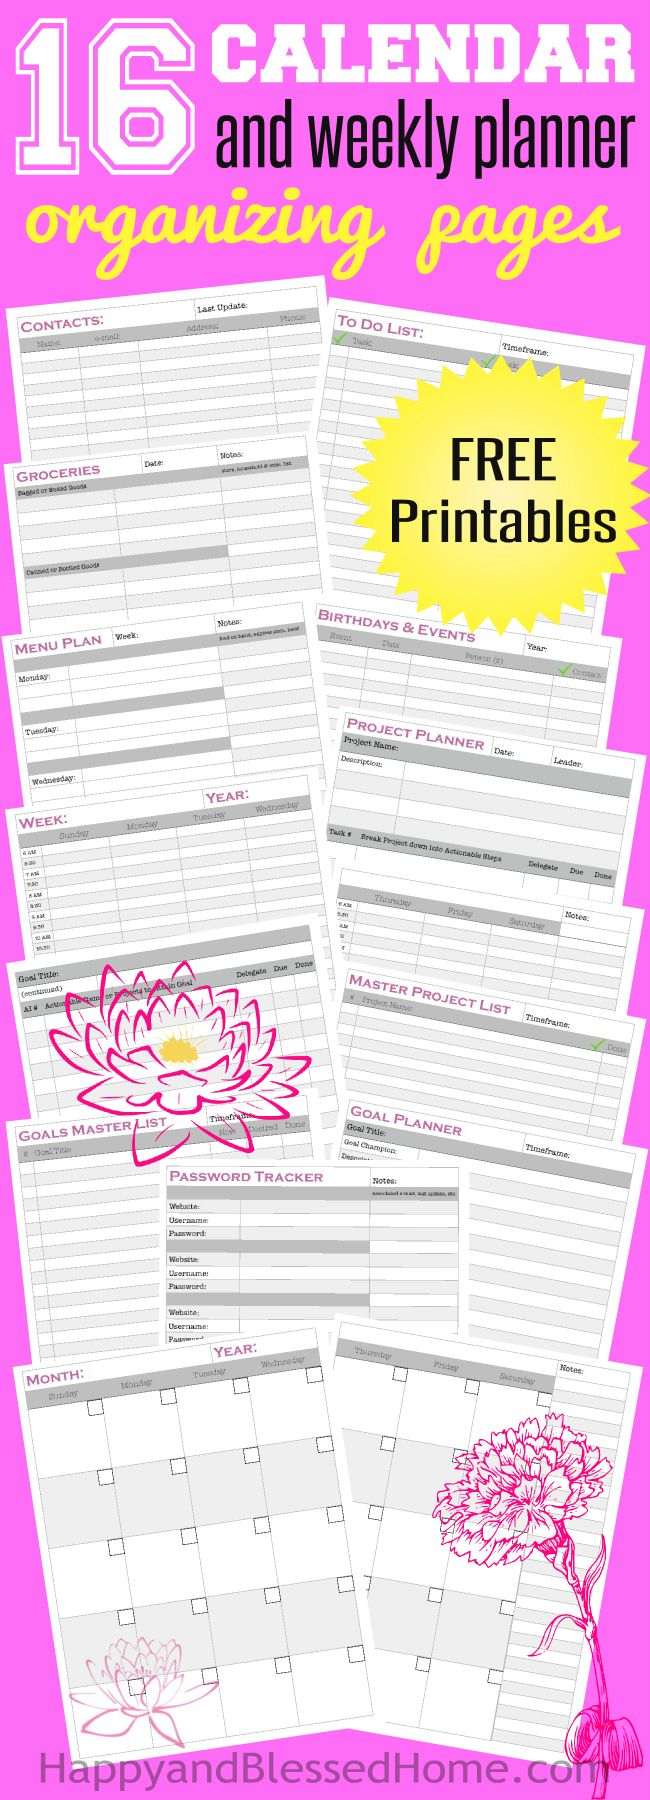 Yearly Monthly and Weekly - Everything you need in a DIY planner and organizer plus goal setting tools and project plans (140+ printed pages). Perfect 2016 Planner. Organization tools include: Goals Master List, Goal Planner, Actionable Steps, Password Tracker, Month at a Glance , Week at a Glance, Birthdays and Events, Contacts, Project Master List, Project Planner Weekly Menu Planner, Grocery List To Do List, and Year at a Glance Calendar